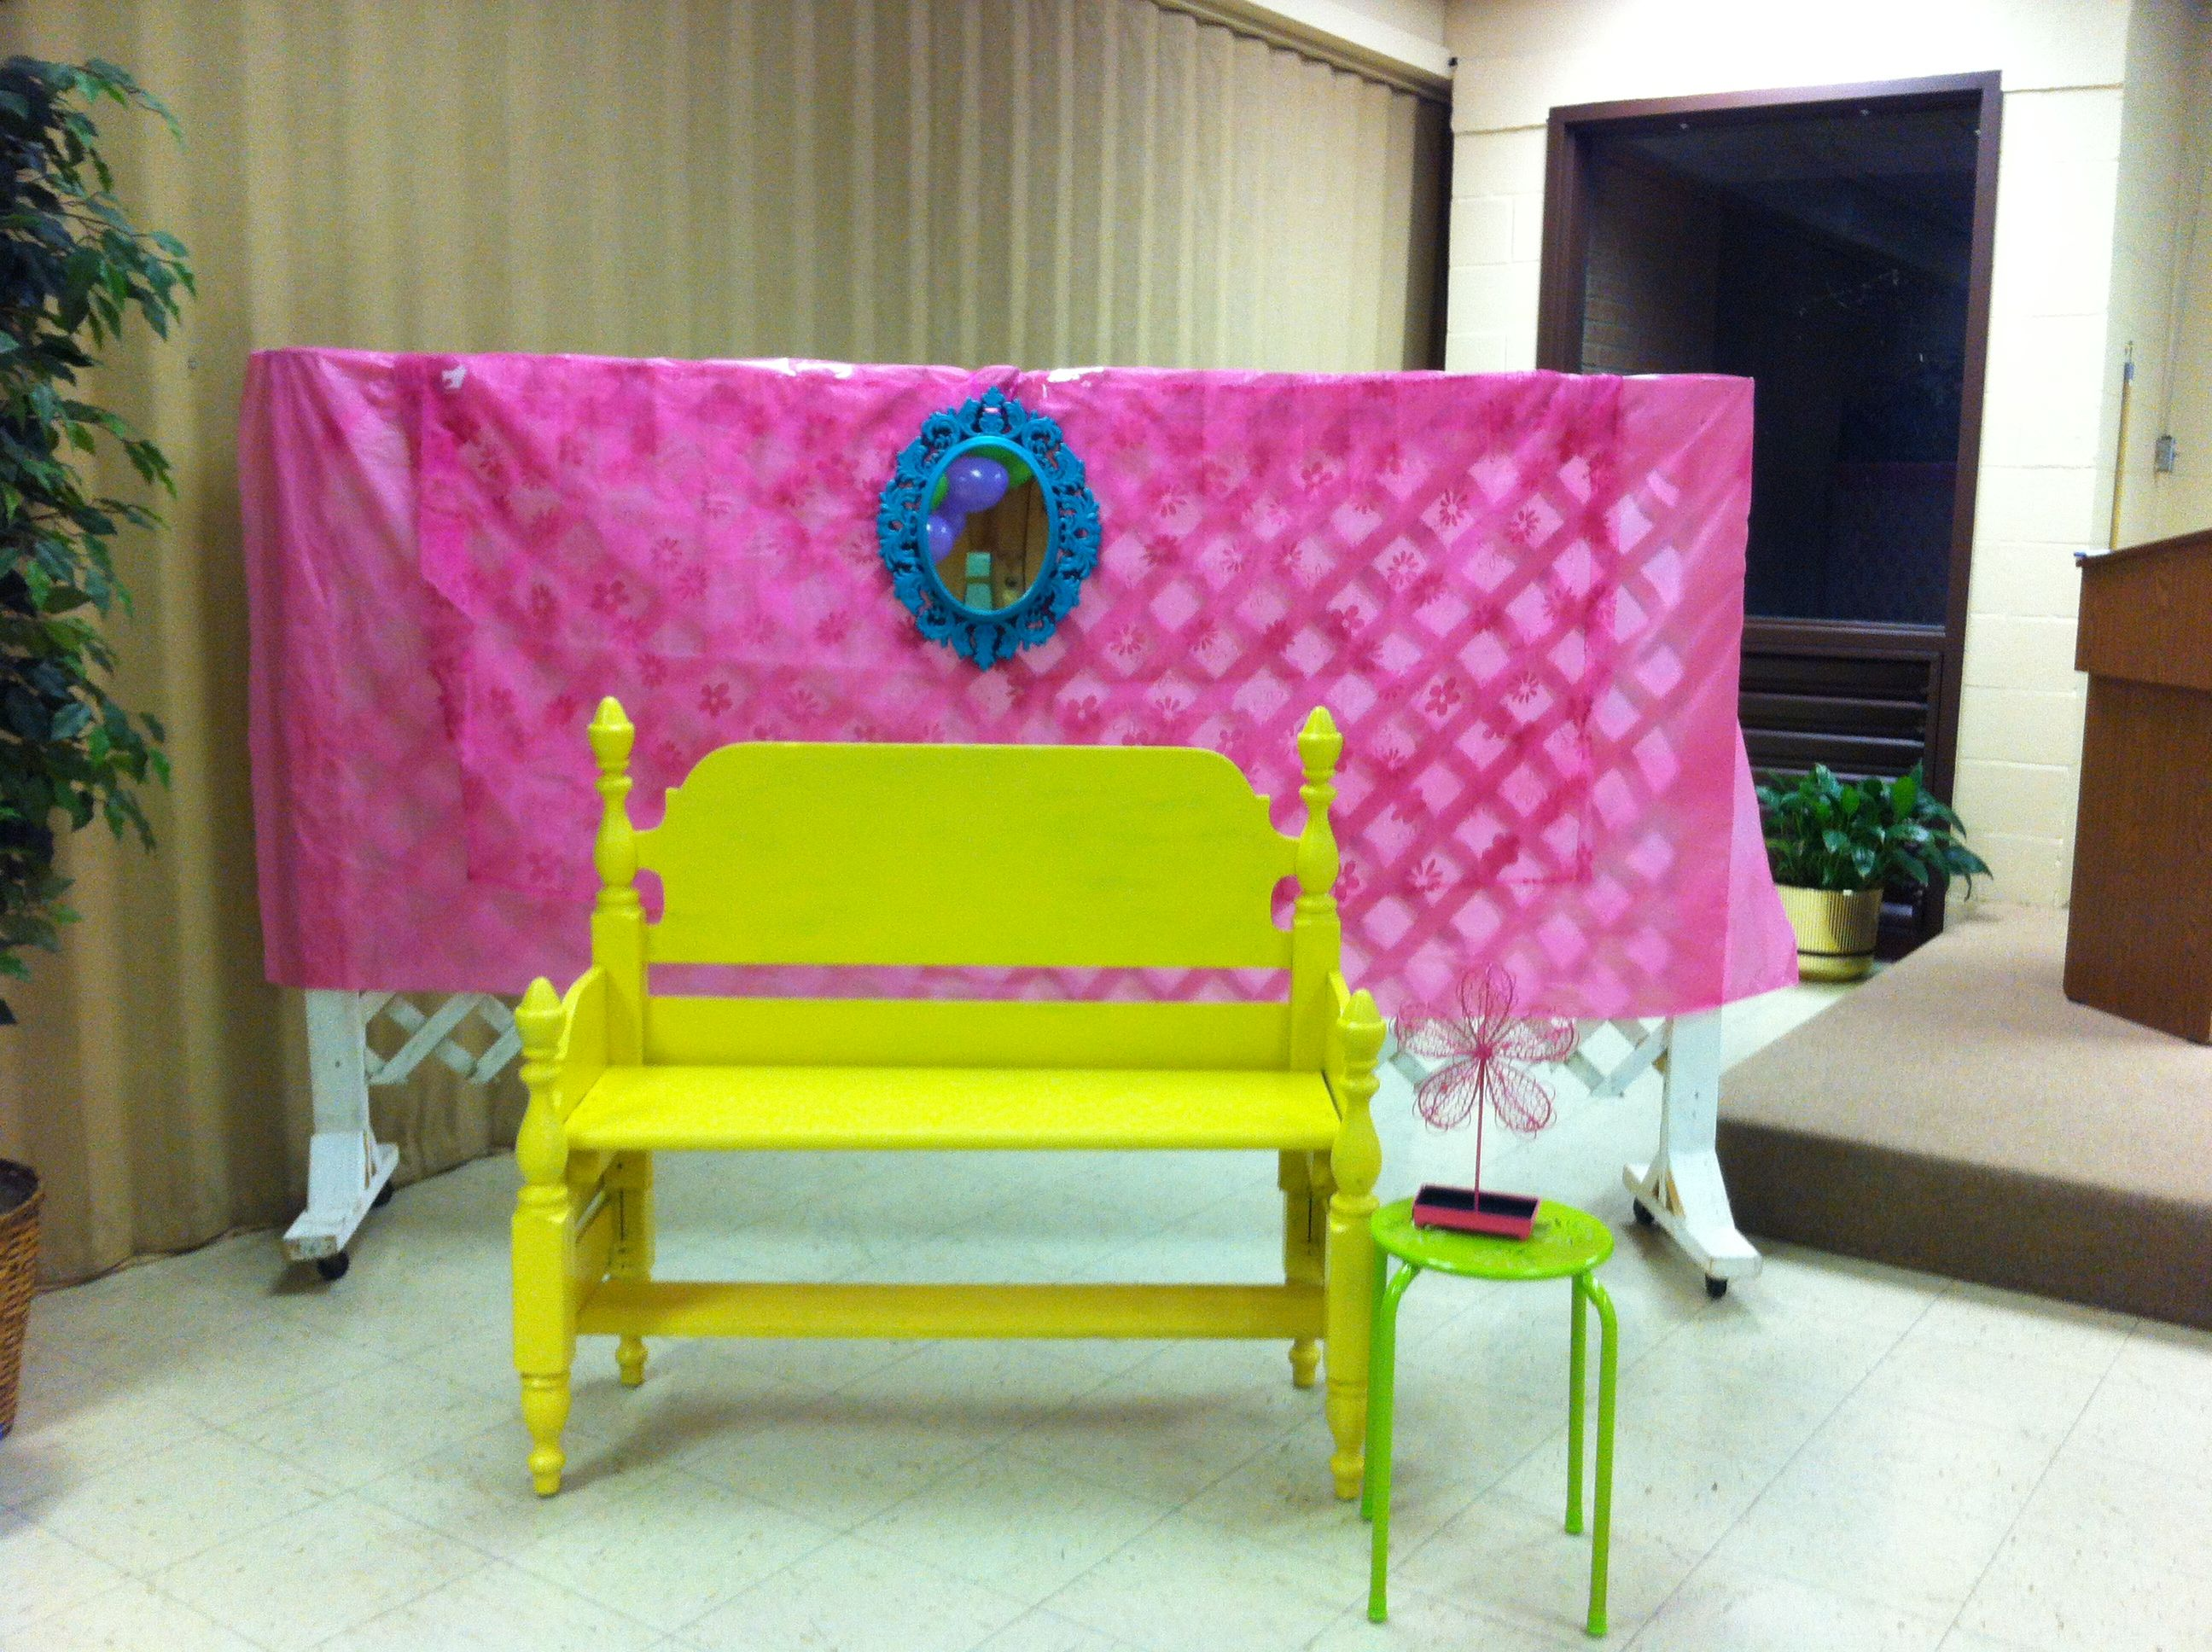 Photo booth ) the bench was a DIY project made from a